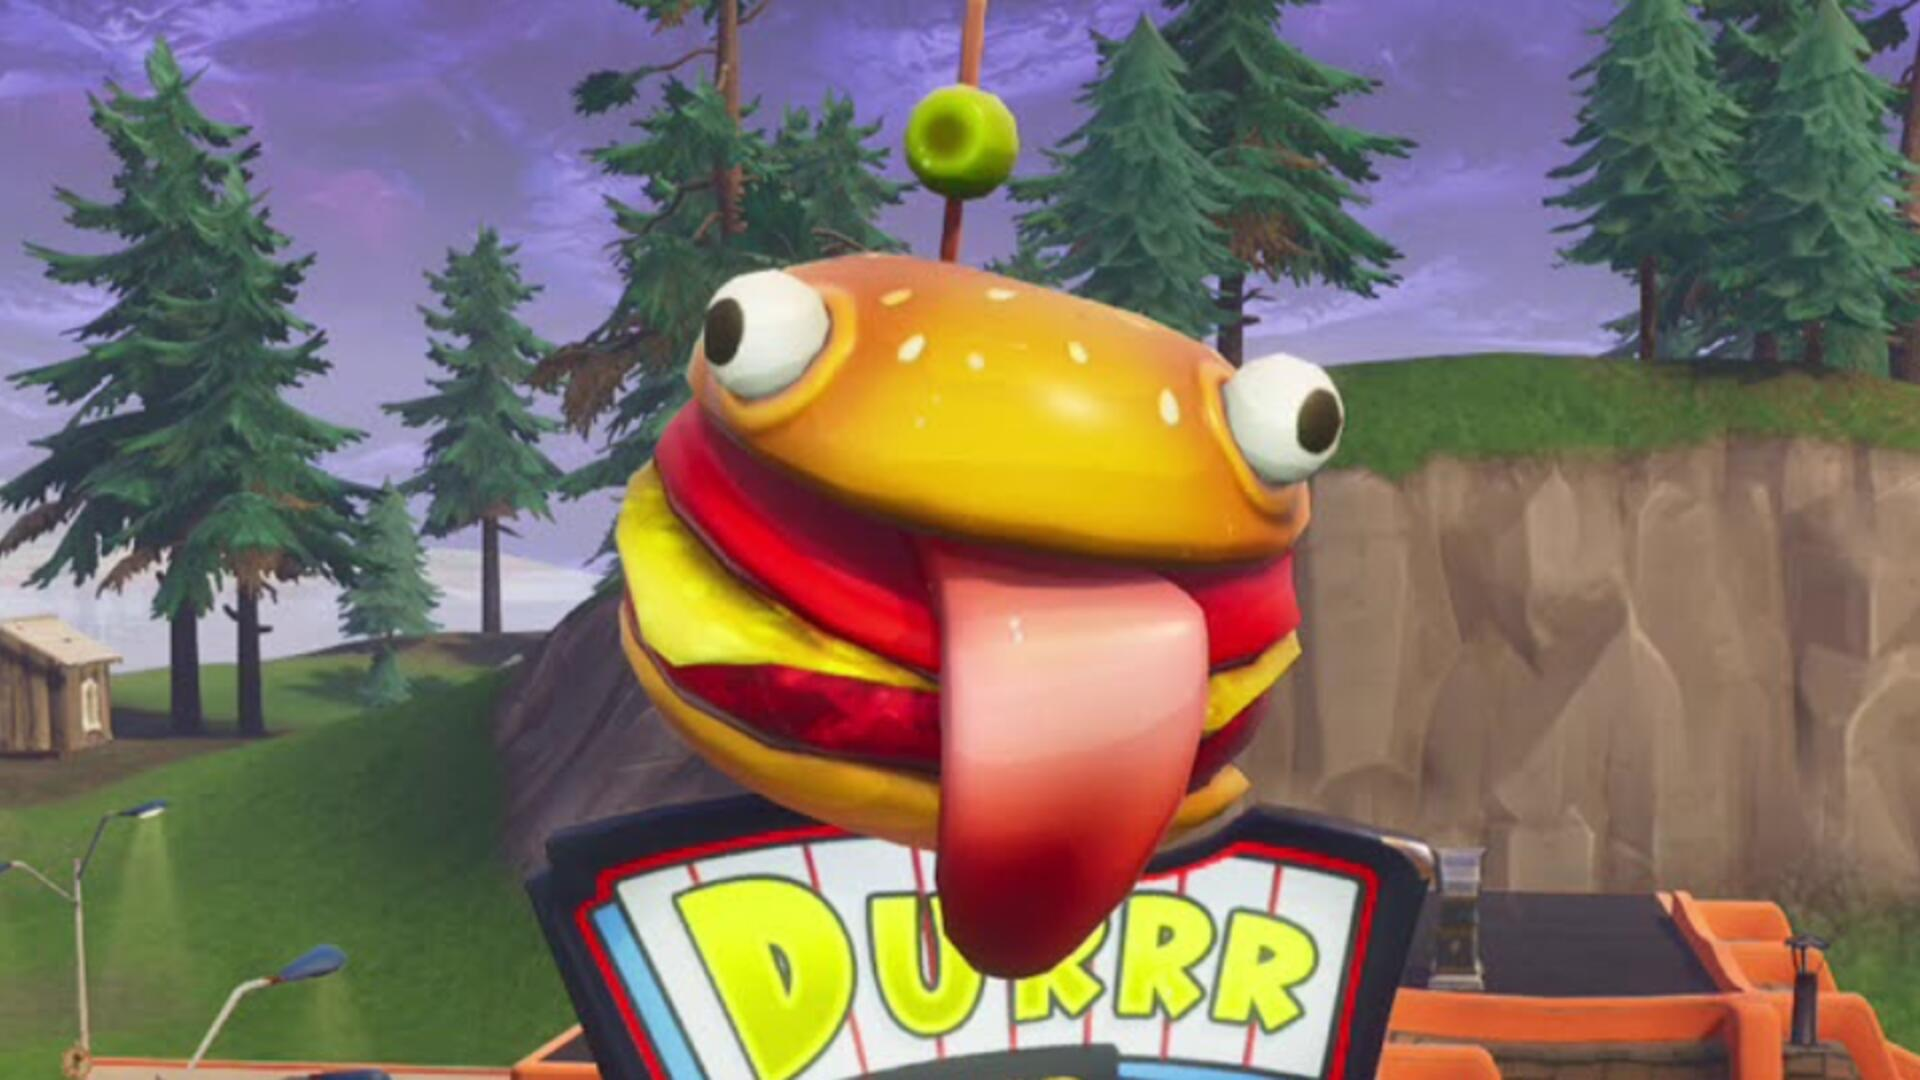 Missing Durr Burger Mascot From Fortnite Somehow Ended Up In